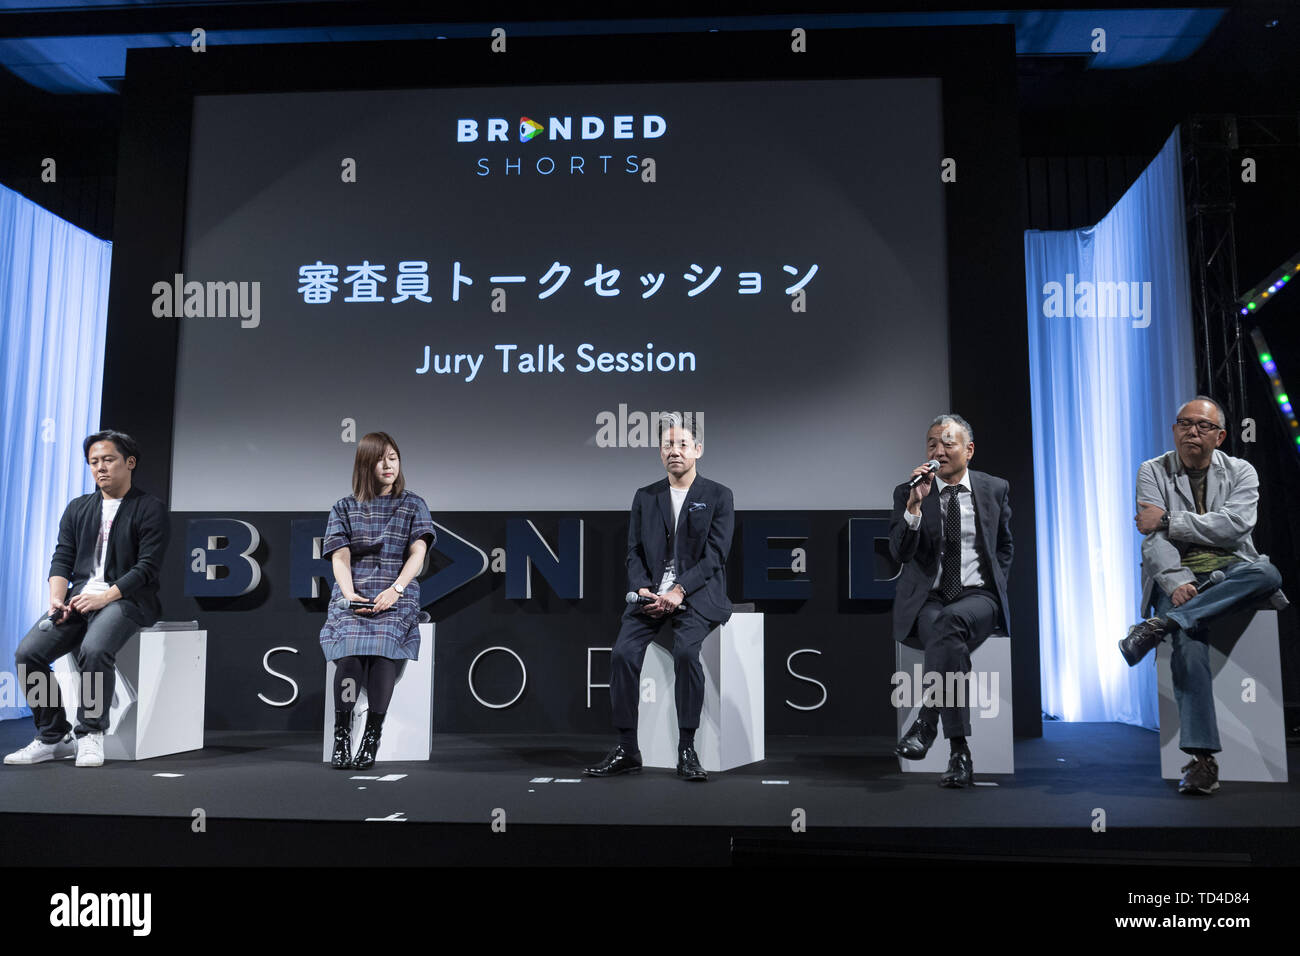 June 11, 2019 - Tokyo, Japan - (L to R) Creative director and copywriter Akihiro Fukube, film director U-ki Yamato, film director Akira Nagai, Morihiko Hasebe Executive Creative Director of Hakuhodo Inc. and film director Isshin Inudo, speak during a Jury Talk Session for the Branded Shorts 2019 as part of the Short Shorts Film Festival & Asia 2019 (SSFF & Asia) at Akasaka Intercity Conference Center the AIR in Tokyo. The Branded Shorts 2019 presented branded short films publicizing companies and products streamed on the internet. The SSFF & Asia 2019 is one of Asia's largest international sho - Stock Image